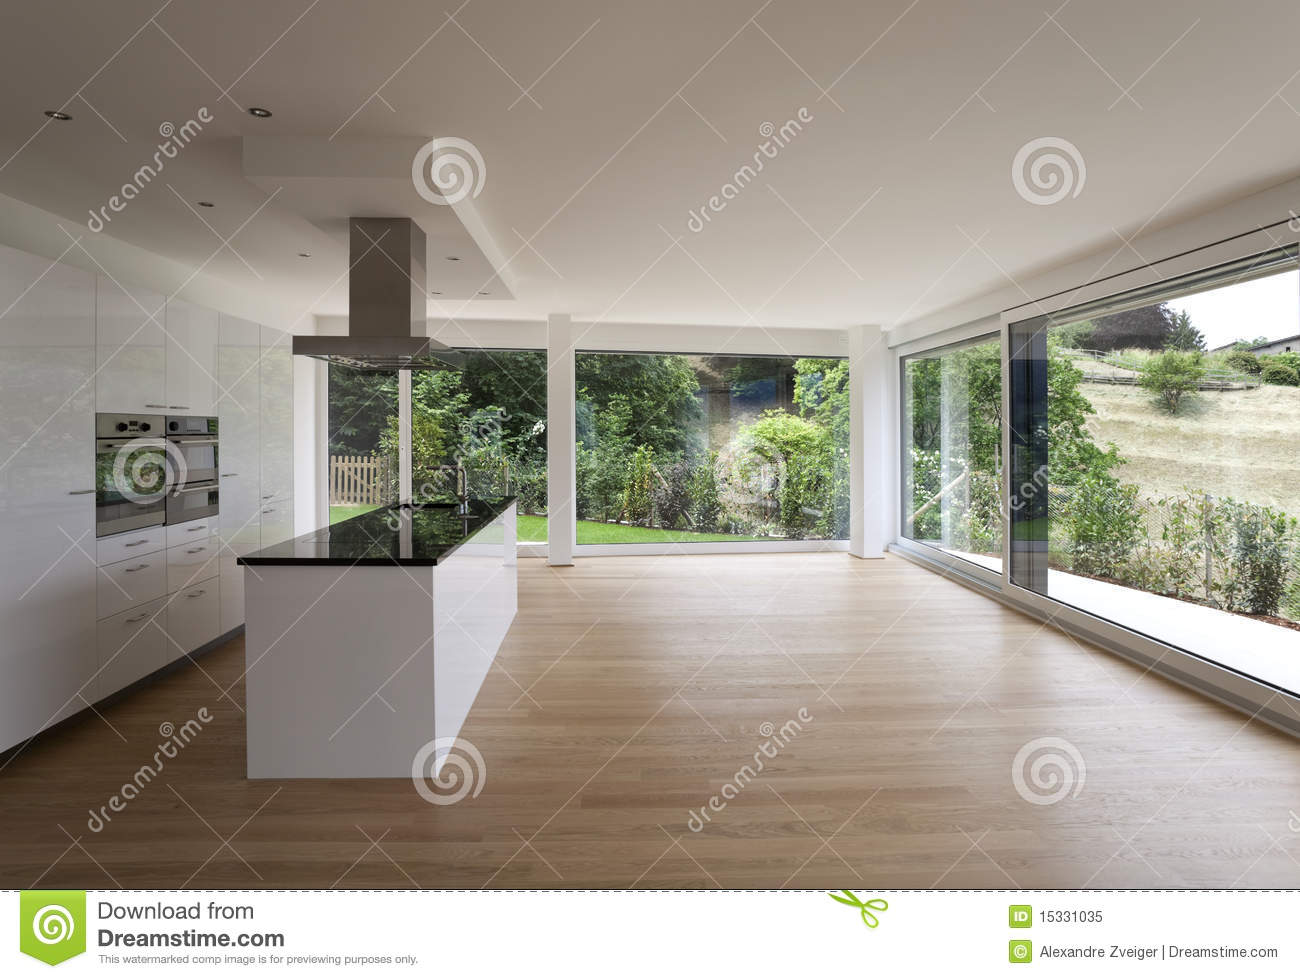 Bel int rieur d 39 une maison moderne photo libre de droits Interieur de maison contemporaine photo